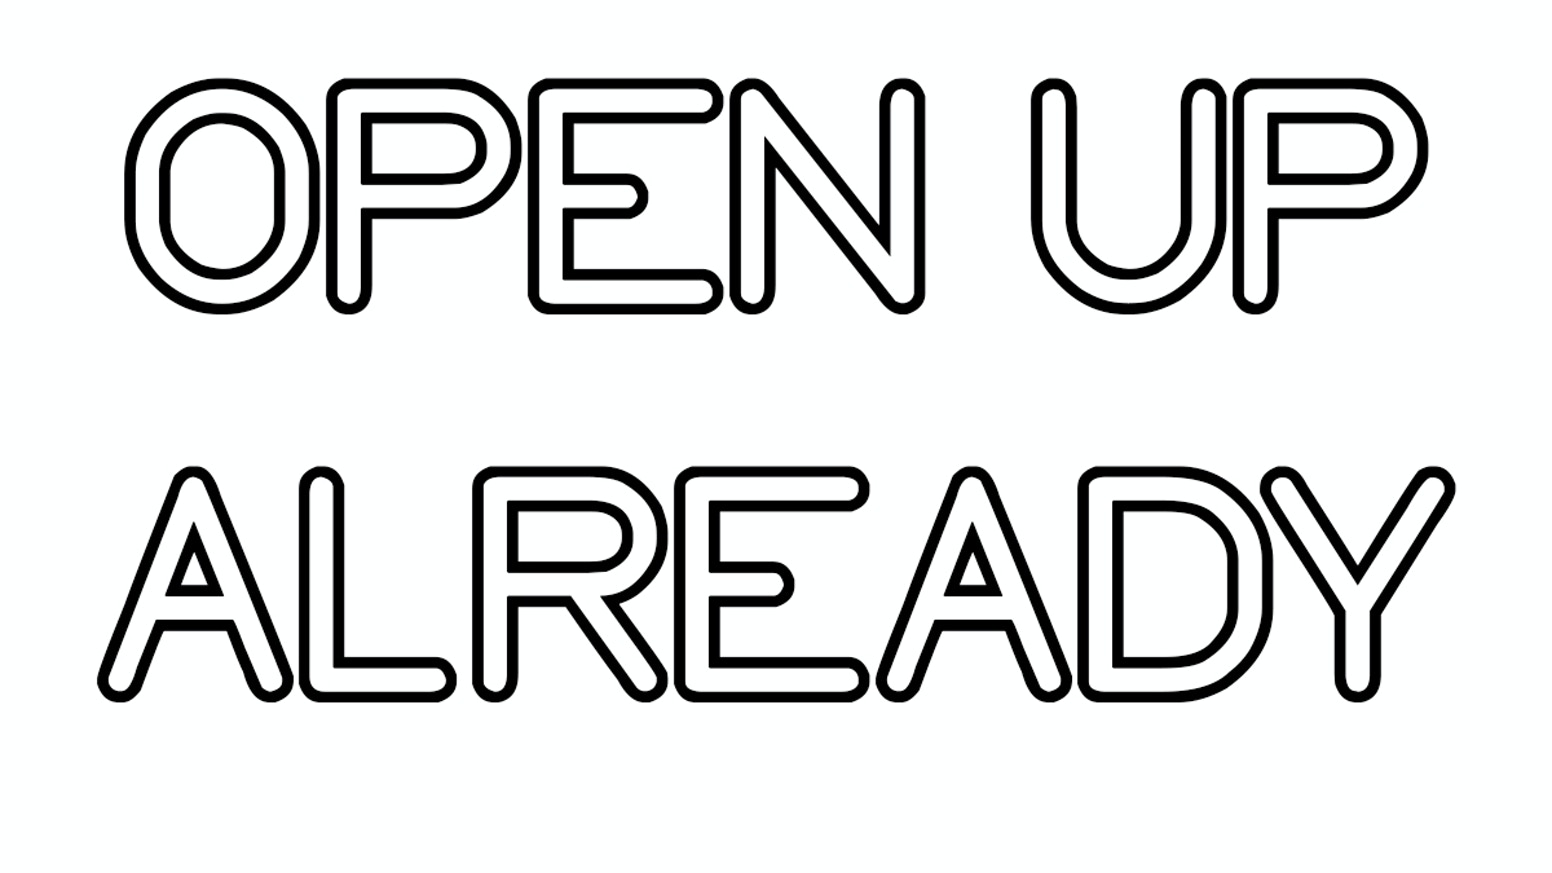 OPEN UP ALREADY by Free Mvmt Shop